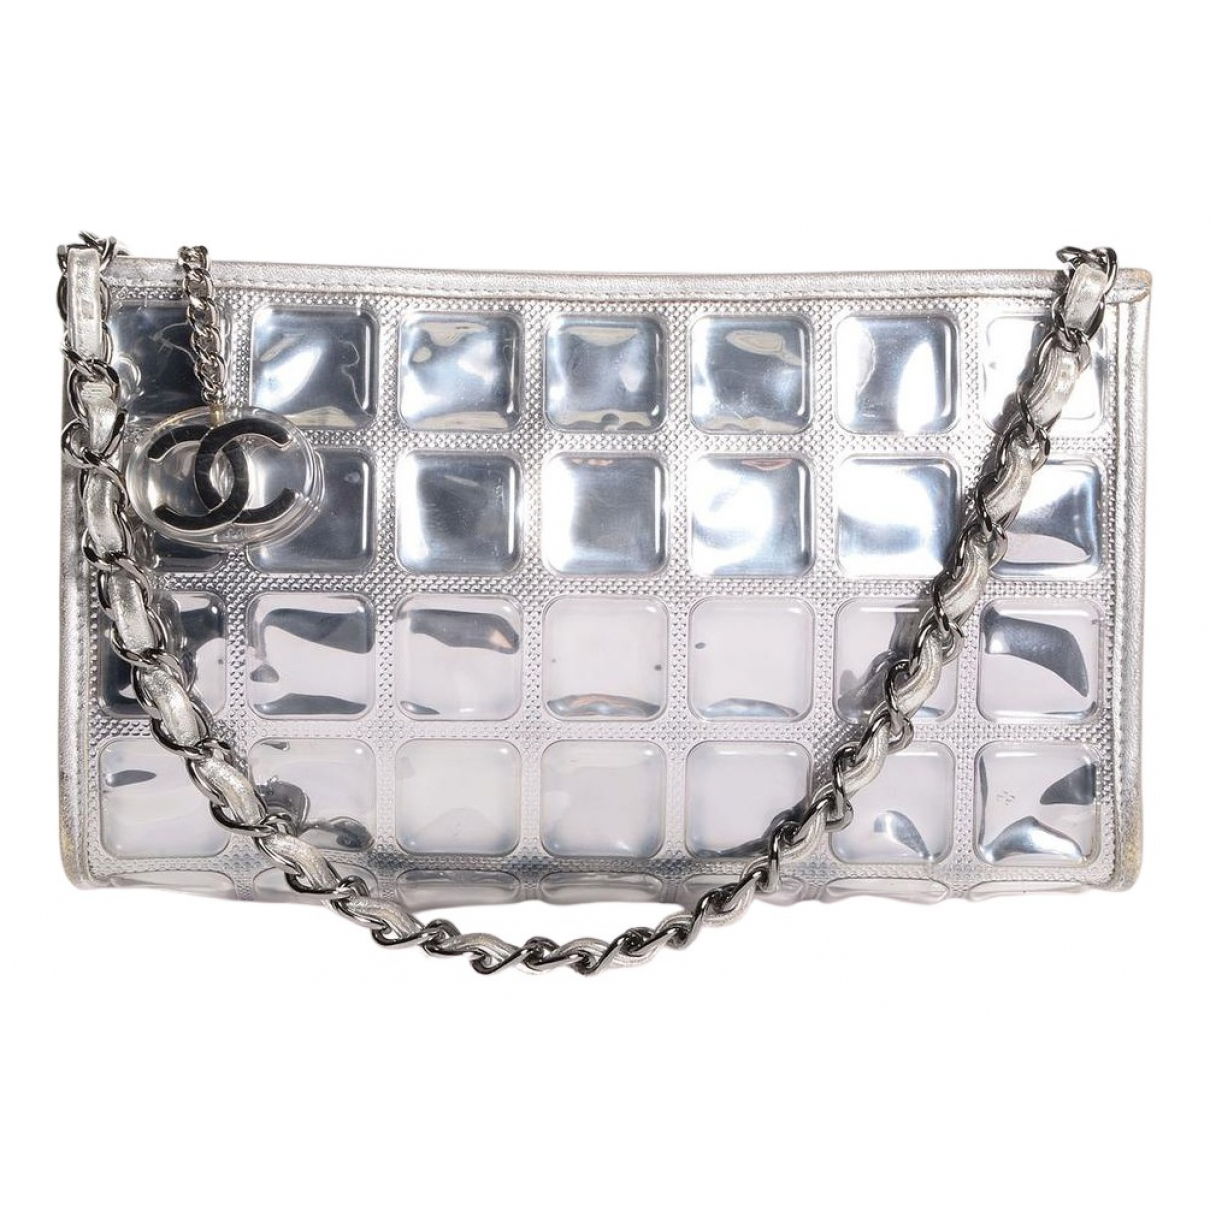 Chanel silver Plastic CLUTCH BAGS